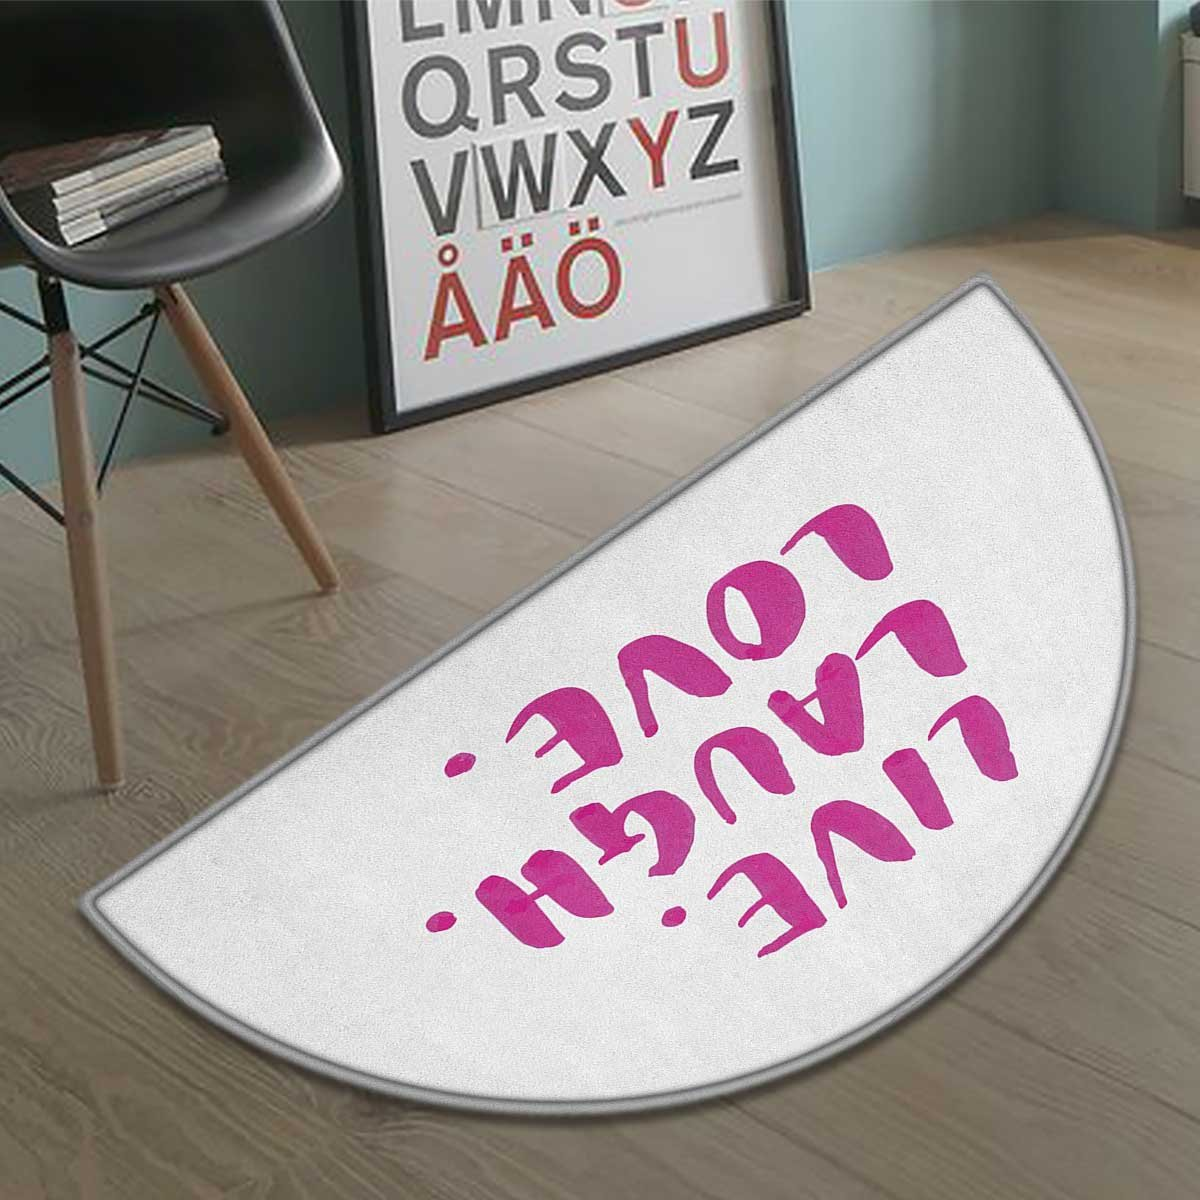 homefeel Live Laugh Love bath mats for floors Positive Live Laugh Love Quote with Brush Stroke Effect Hand Lettering door mat indoors Bathroom Mats Half Moon Non Slip Purple White size:23.7''x15.8''